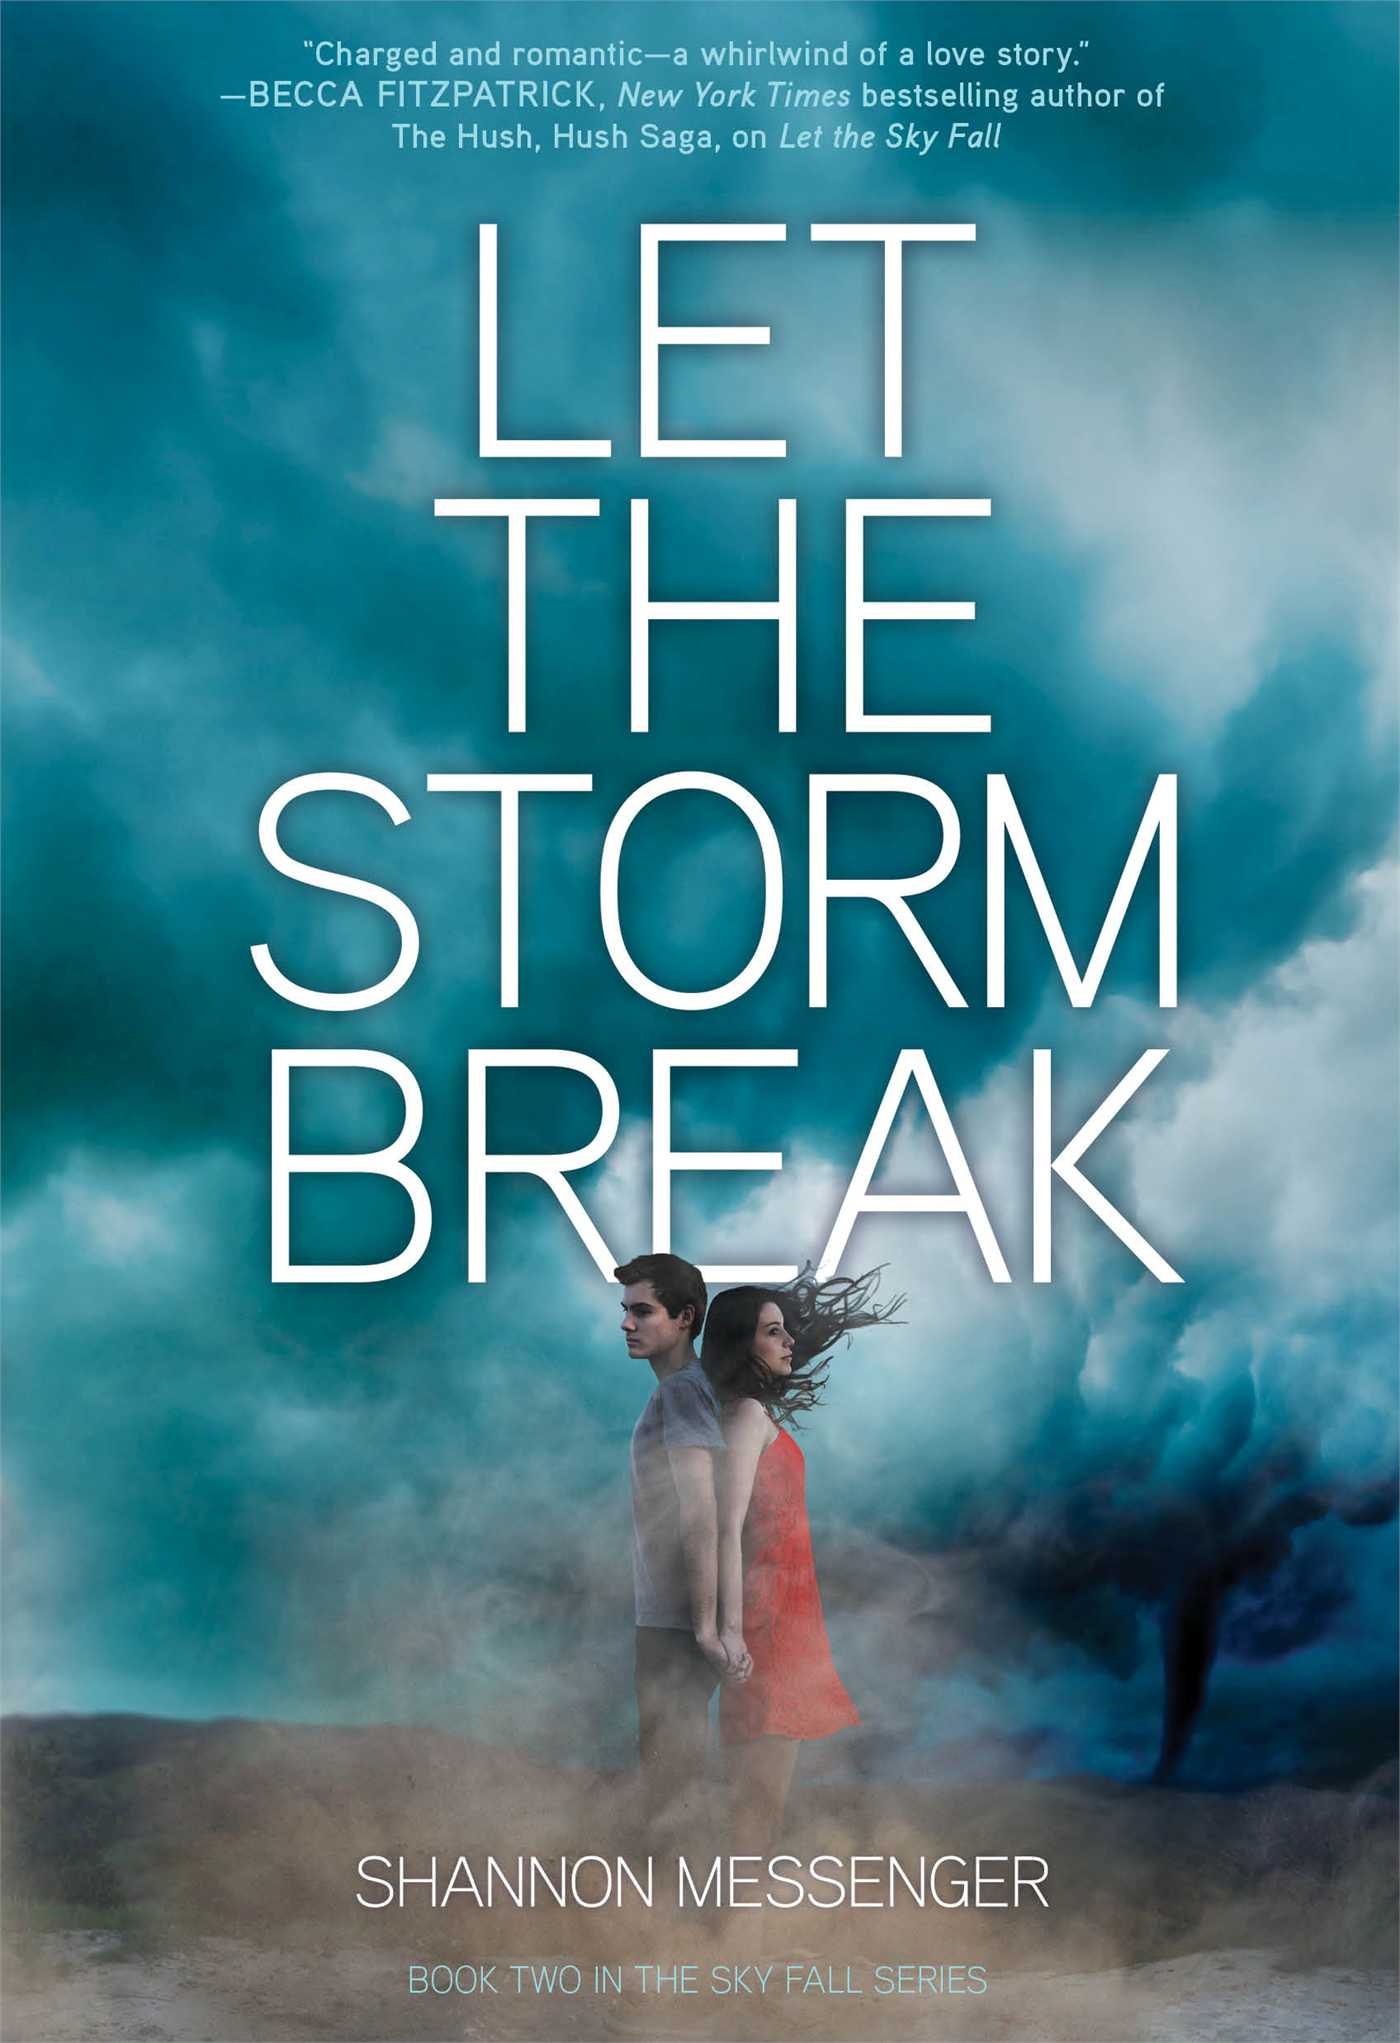 Let-the-storm-break-9781442450455_hr